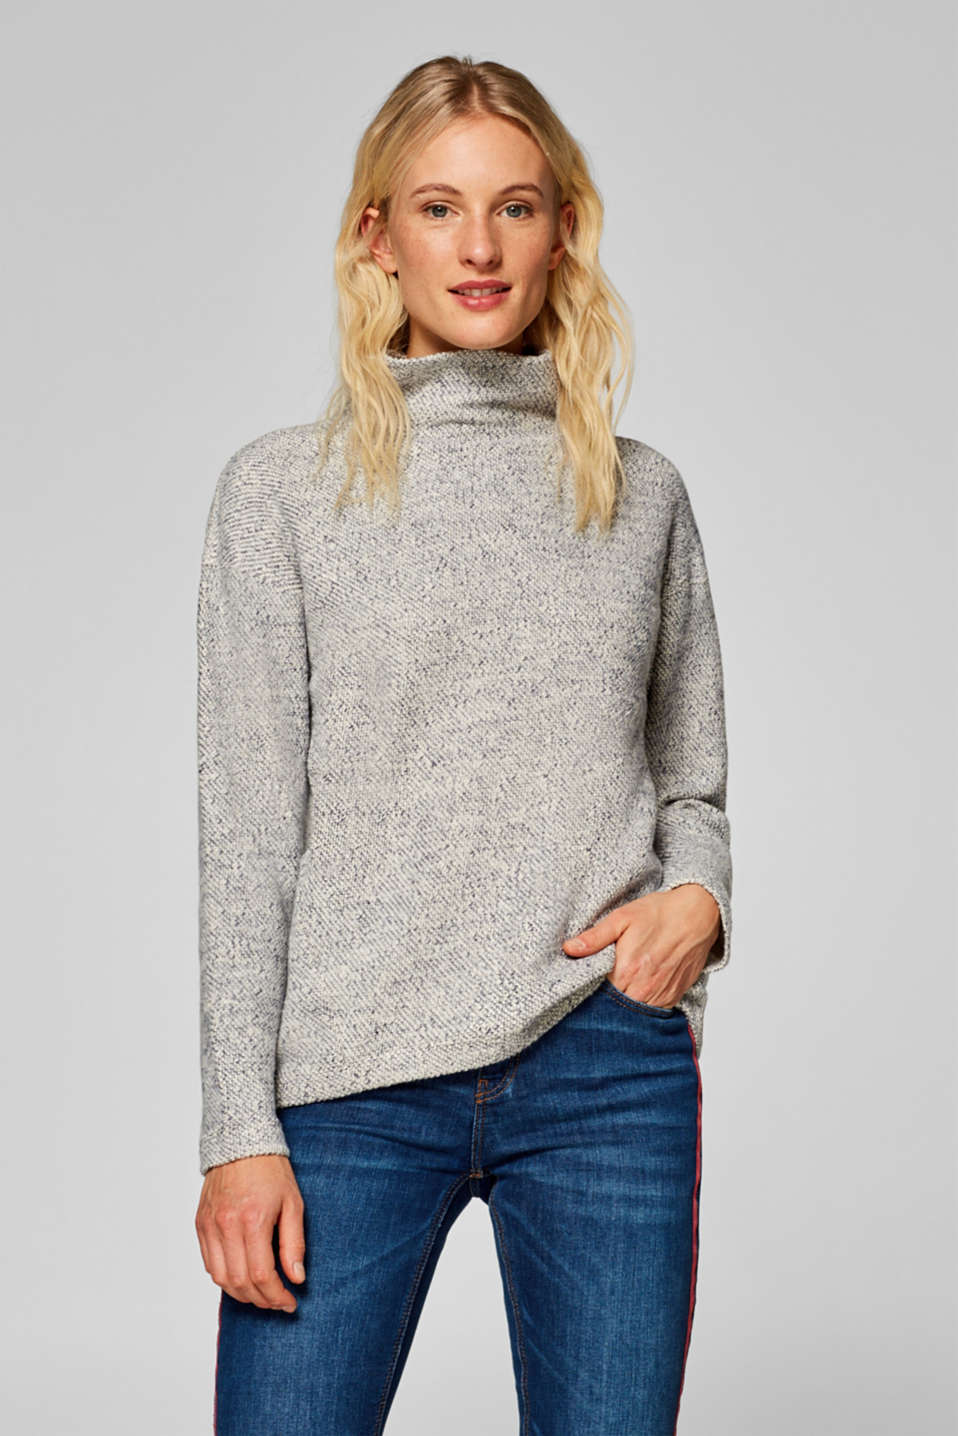 Esprit - Textured sweatshirt with a stand-up collar